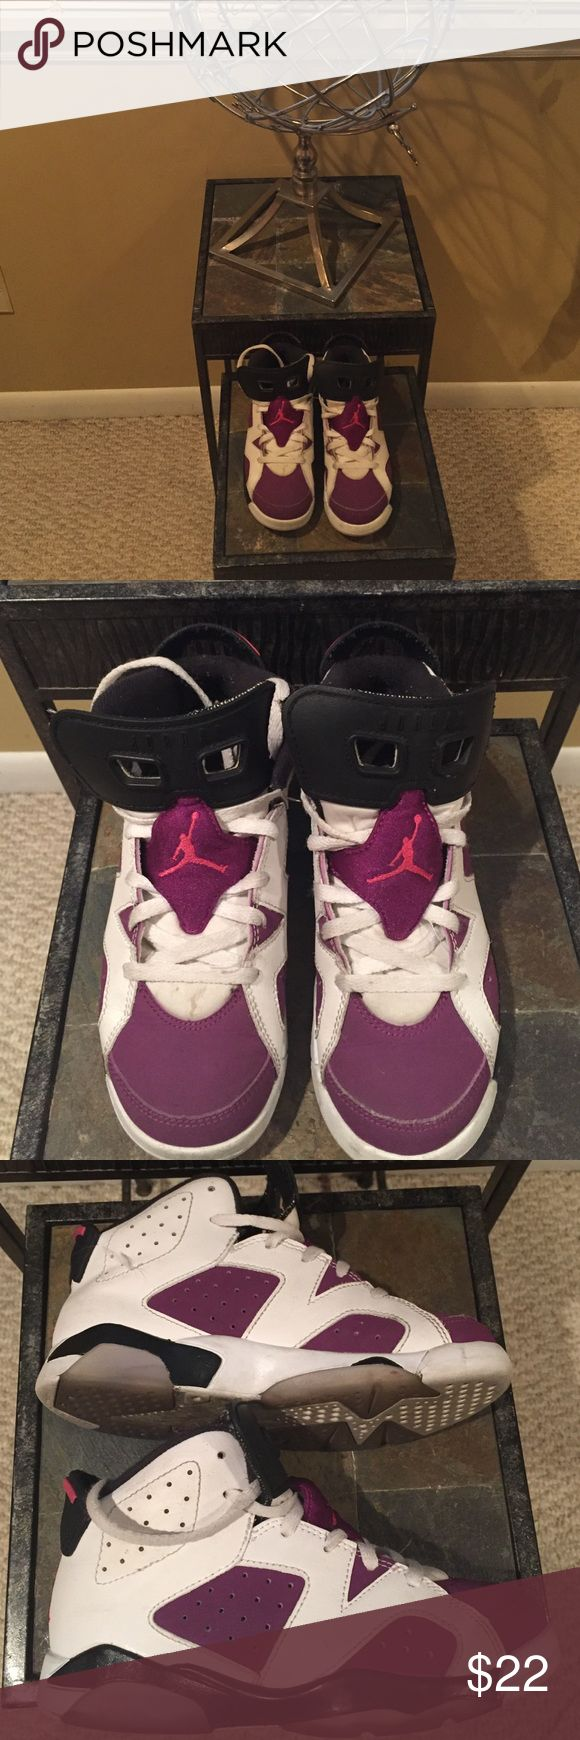 Jordan Used Girls Sneakers Size 1 Jordan Used Girls Nike Sneakers Size 1 with normal wear Please See All Photos Thank You! Nike Shoes Sneakers